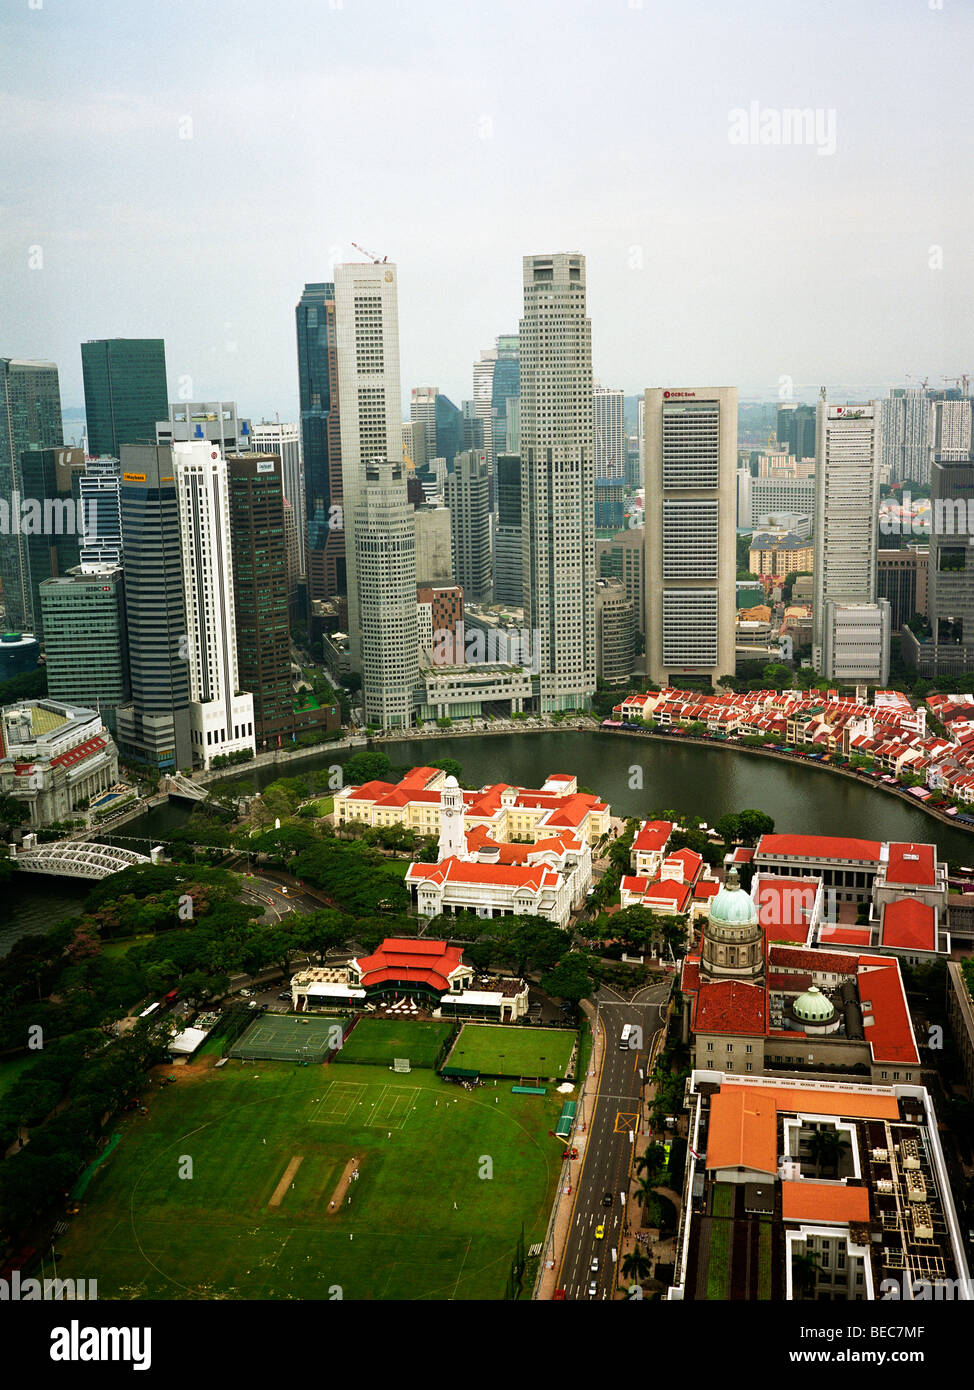 Singapore: Clark Quay and Financial District - Stock Image